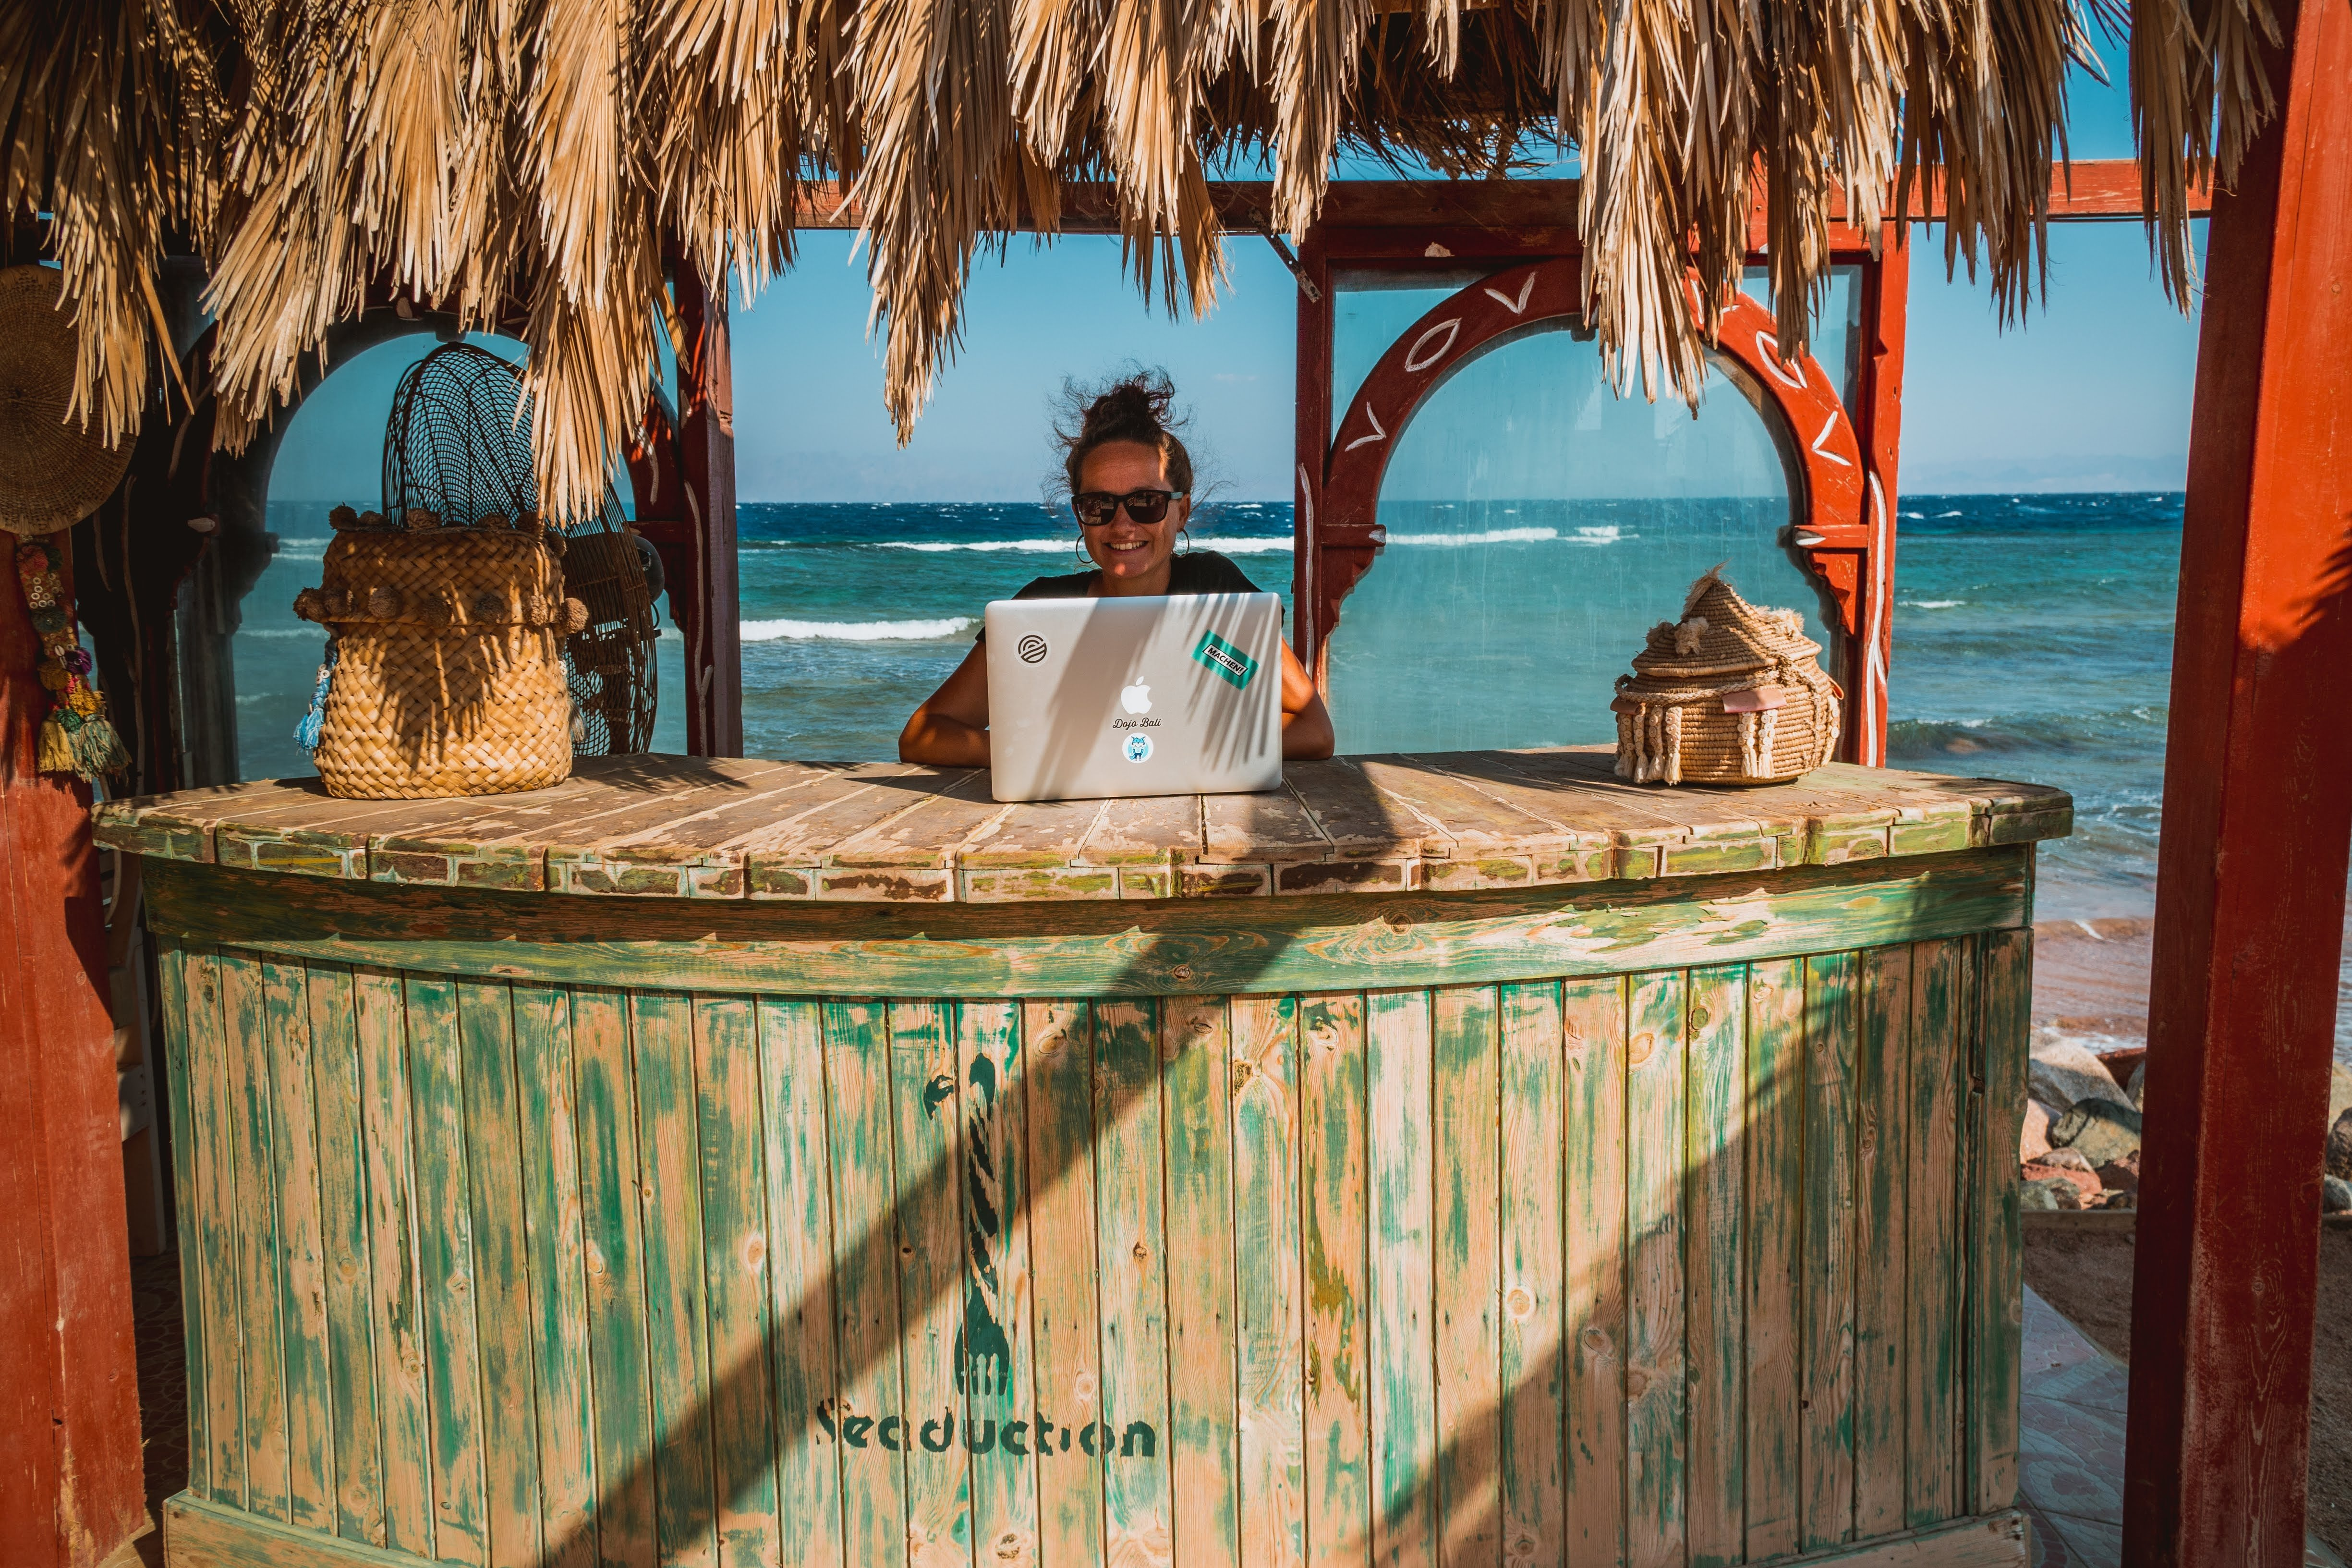 Beginners guide to become a digital nomad in 2021 with a laptop by the beach.